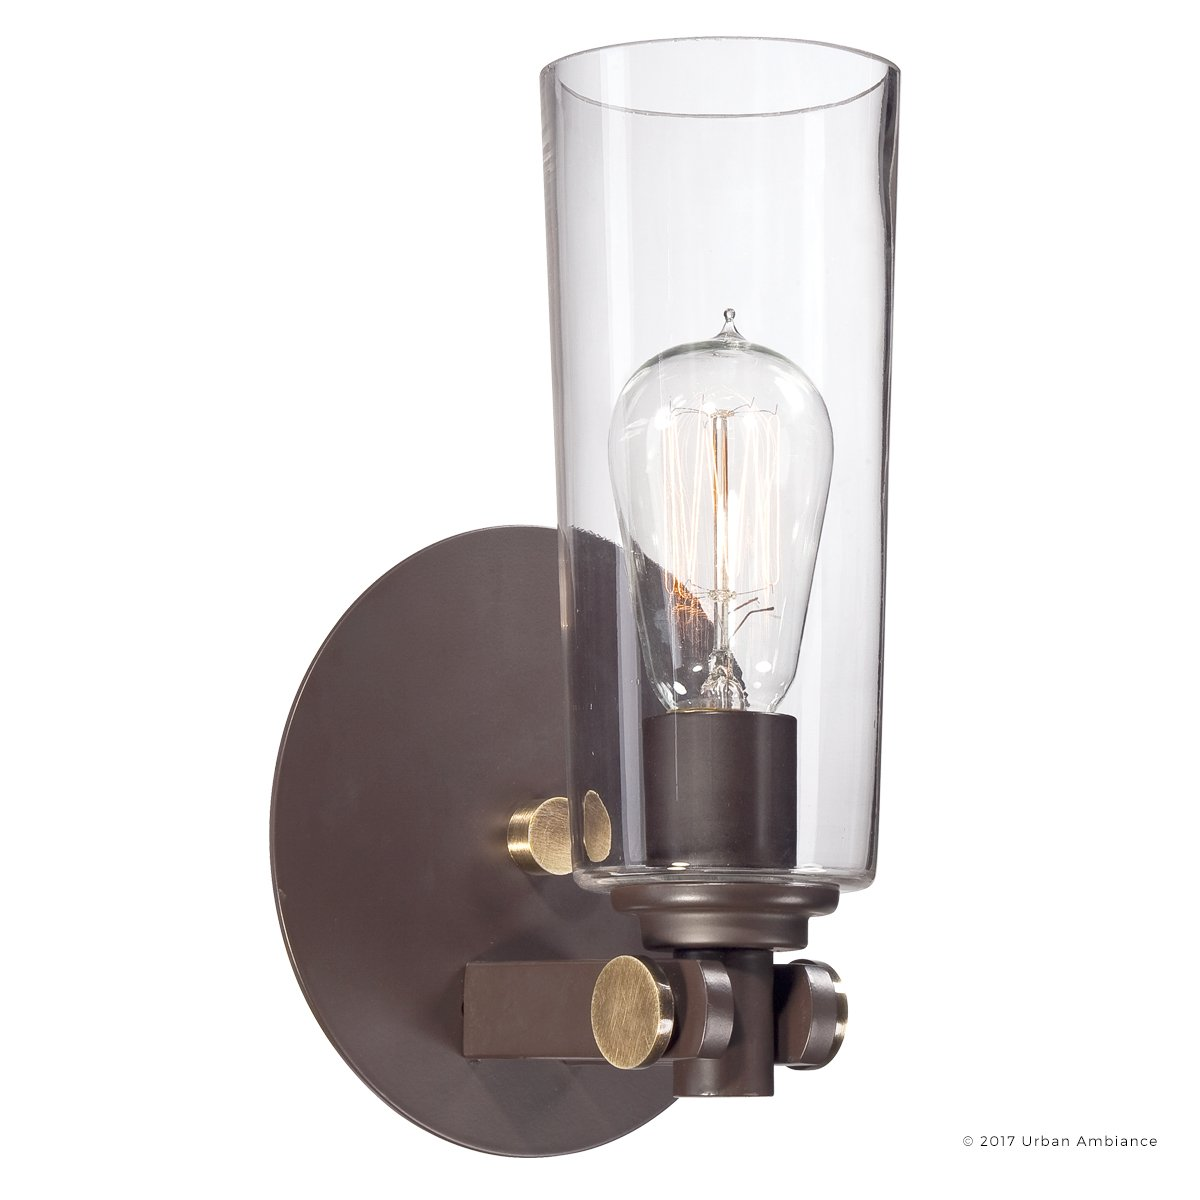 Luxury Vintage Indoor Wall Light, Small Size: 11''H x 6.5''W, with Casual Style Elements, Retro Design, Elegant Estate Bronze Finish and Clear Glass, Includes Edison Bulb, UQL2690 by Urban Ambiance by Urban Ambiance (Image #1)